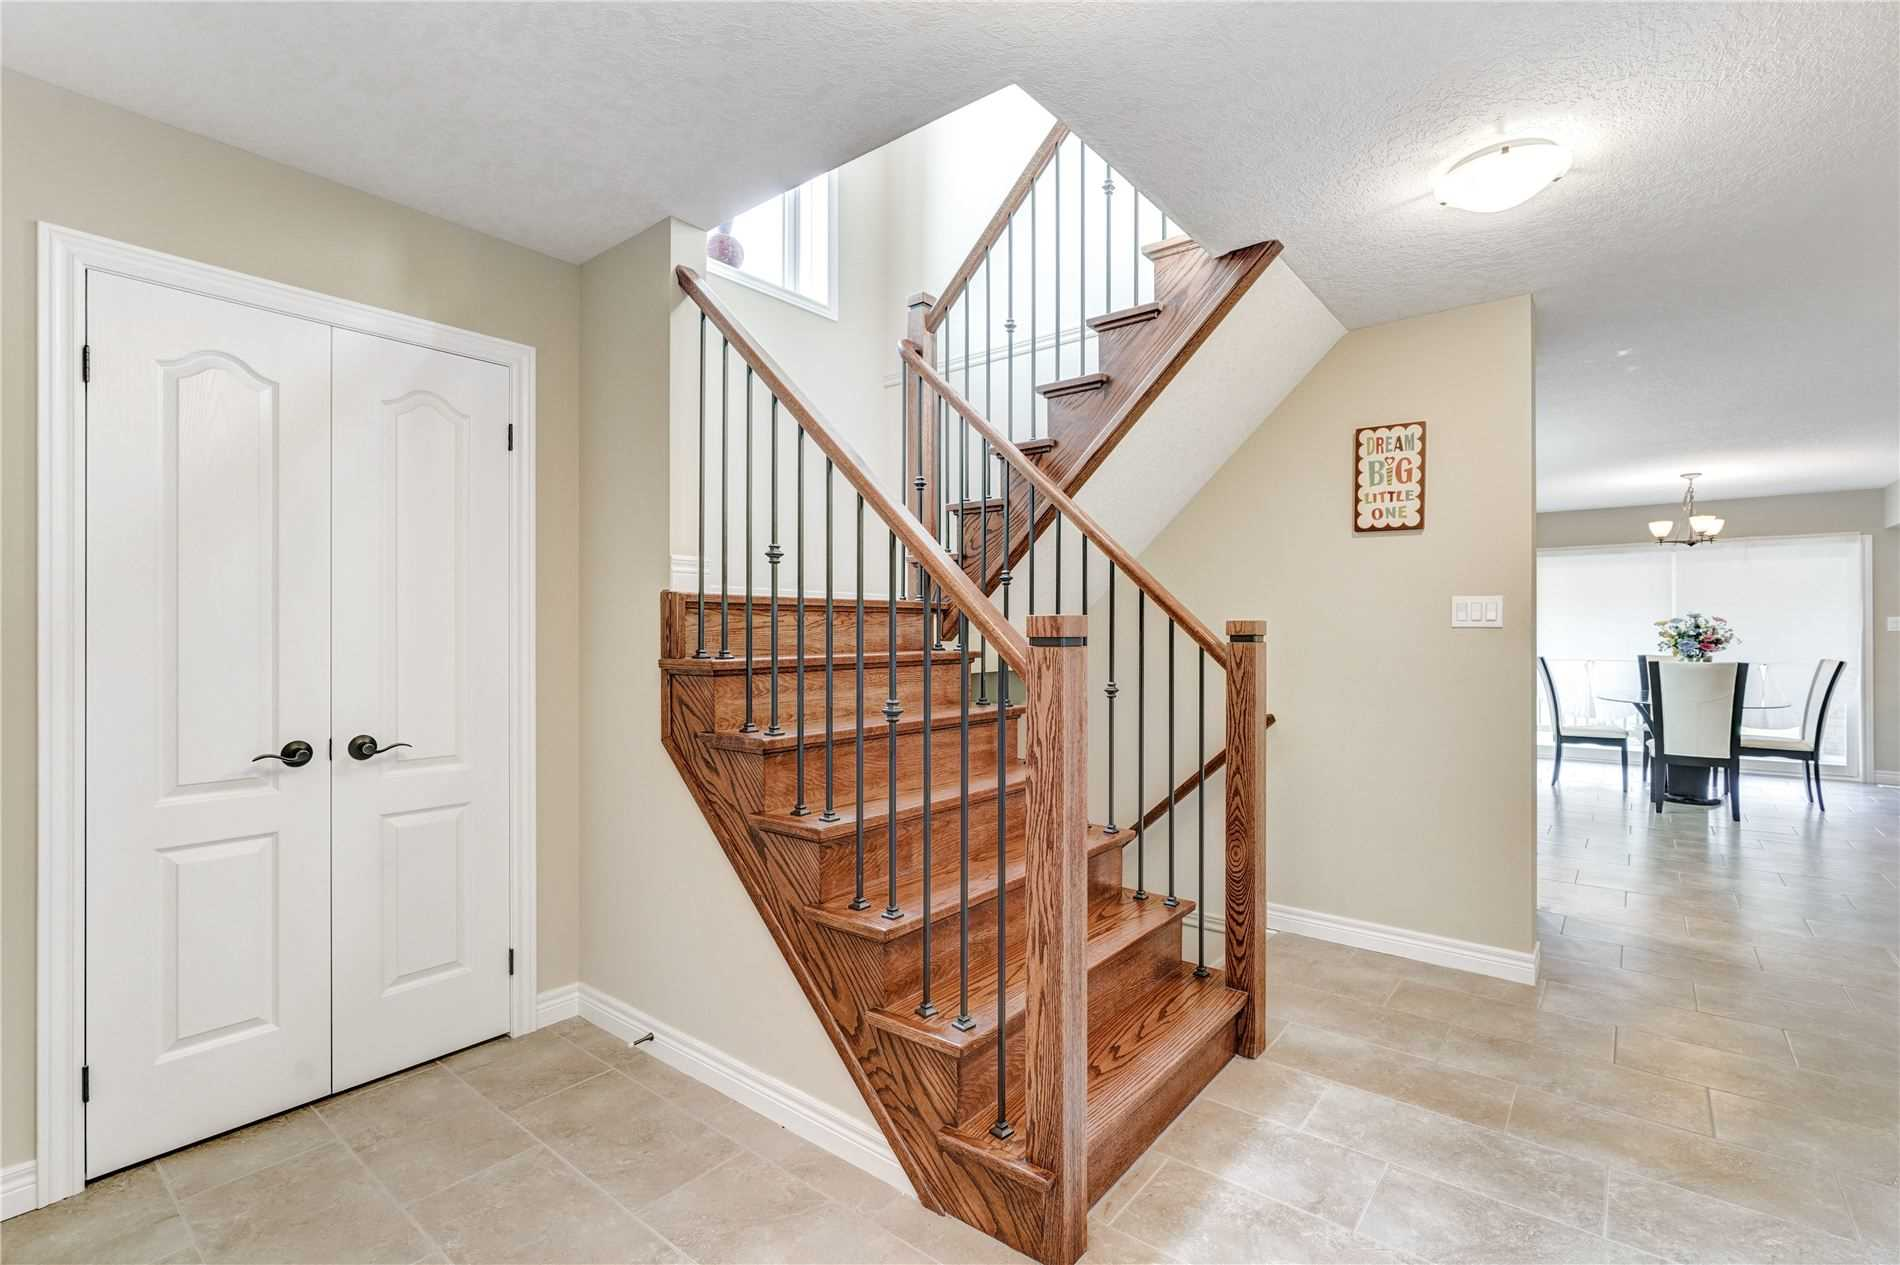 Image 12 of 19 showing inside of 4 Bedroom Detached 2-Storey house for sale at 4 Stuckey Lane, East Luther Grand Valley L0N1G0